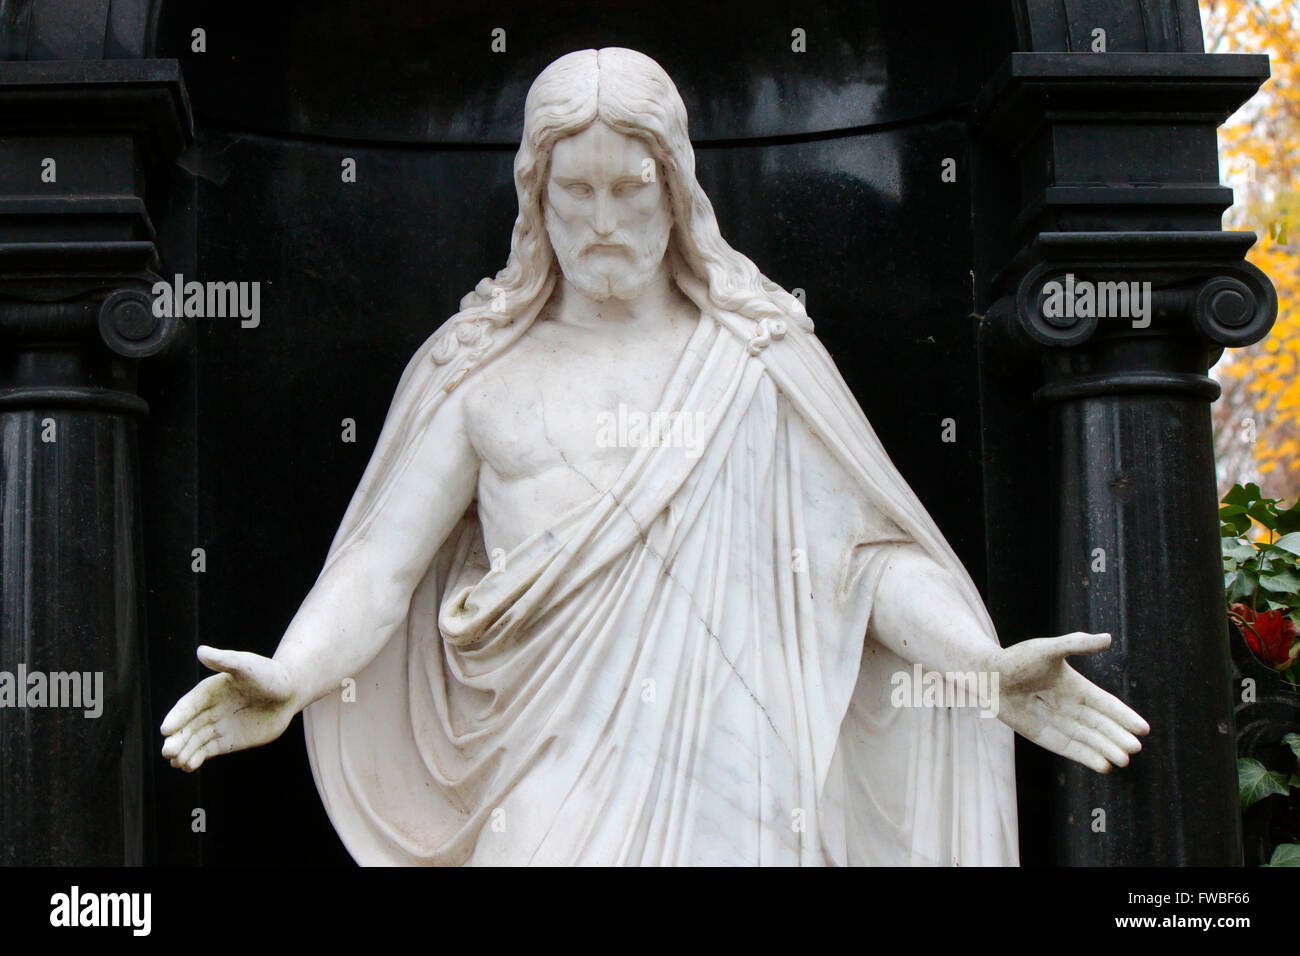 Jesus Christus Figur, Friedhof, Berlin. - Stock Image